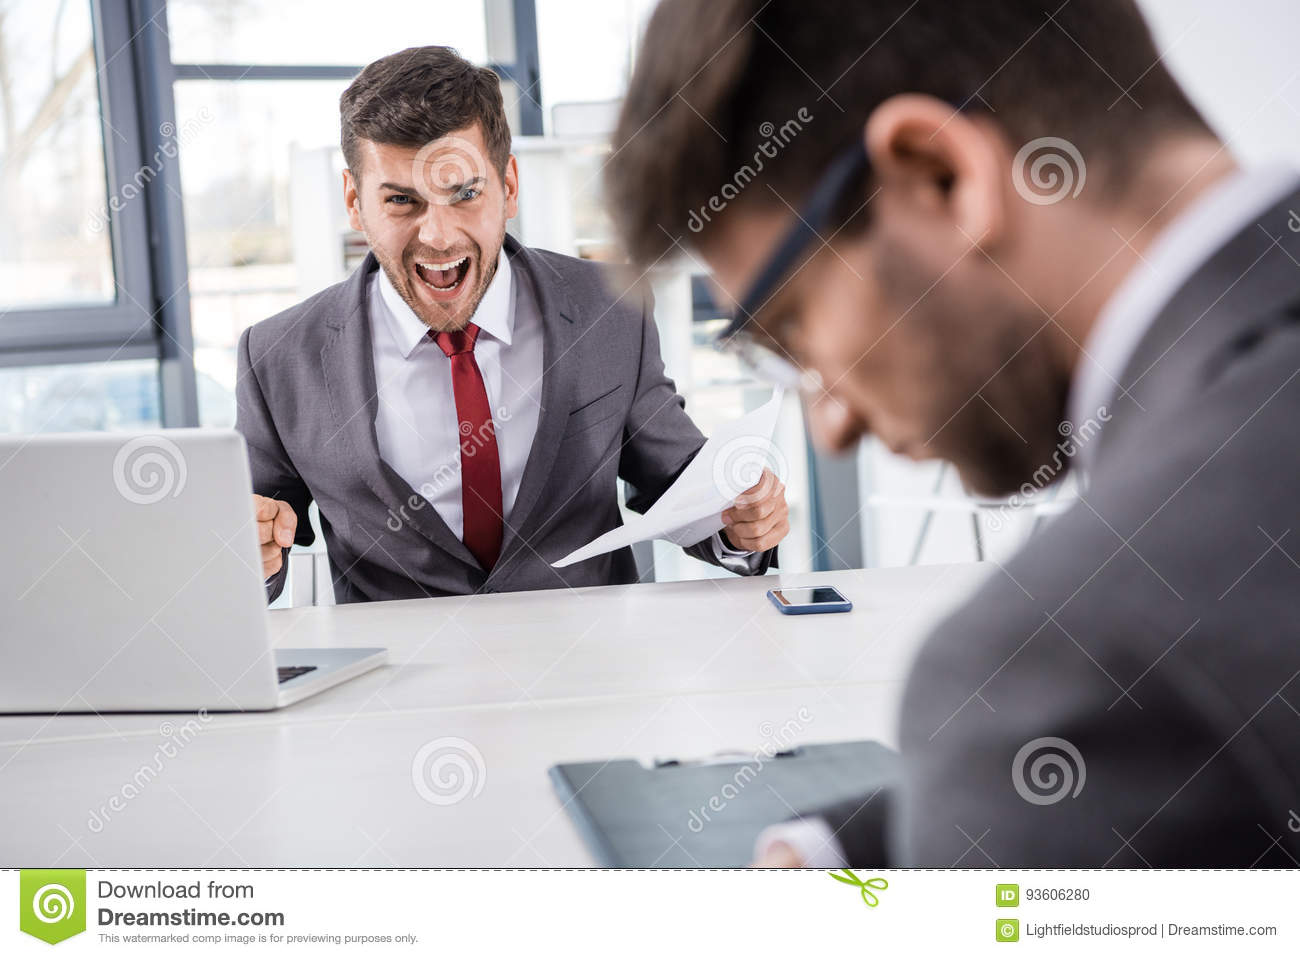 Boss with documents shouting at upset colleague at workplace